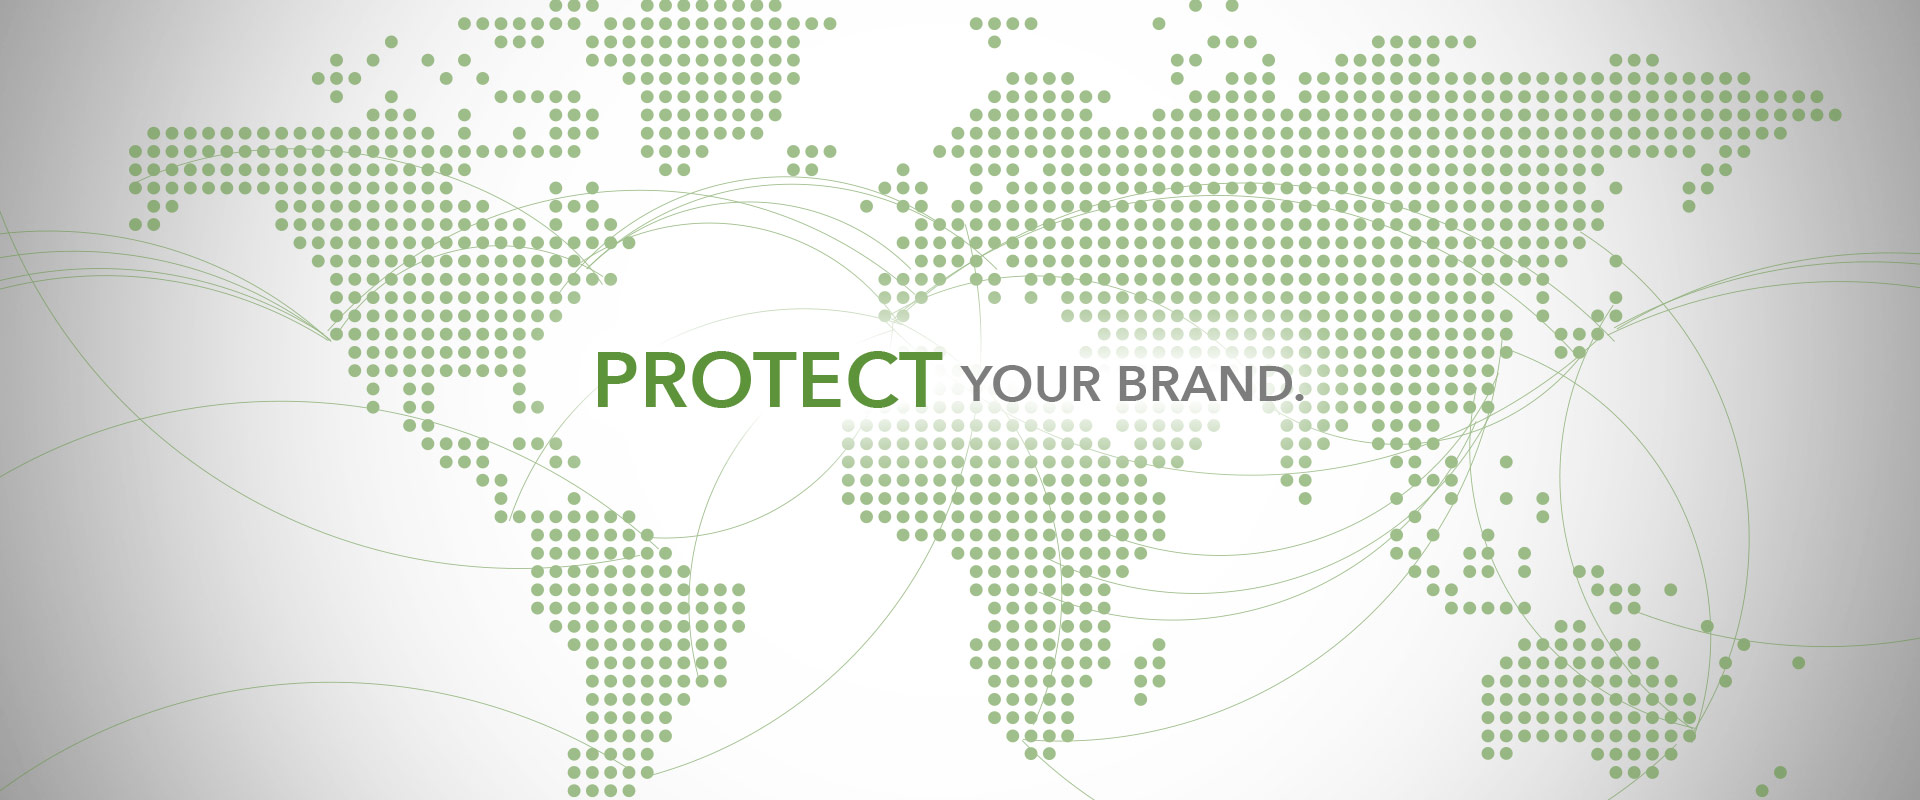 Protect Your Brand.